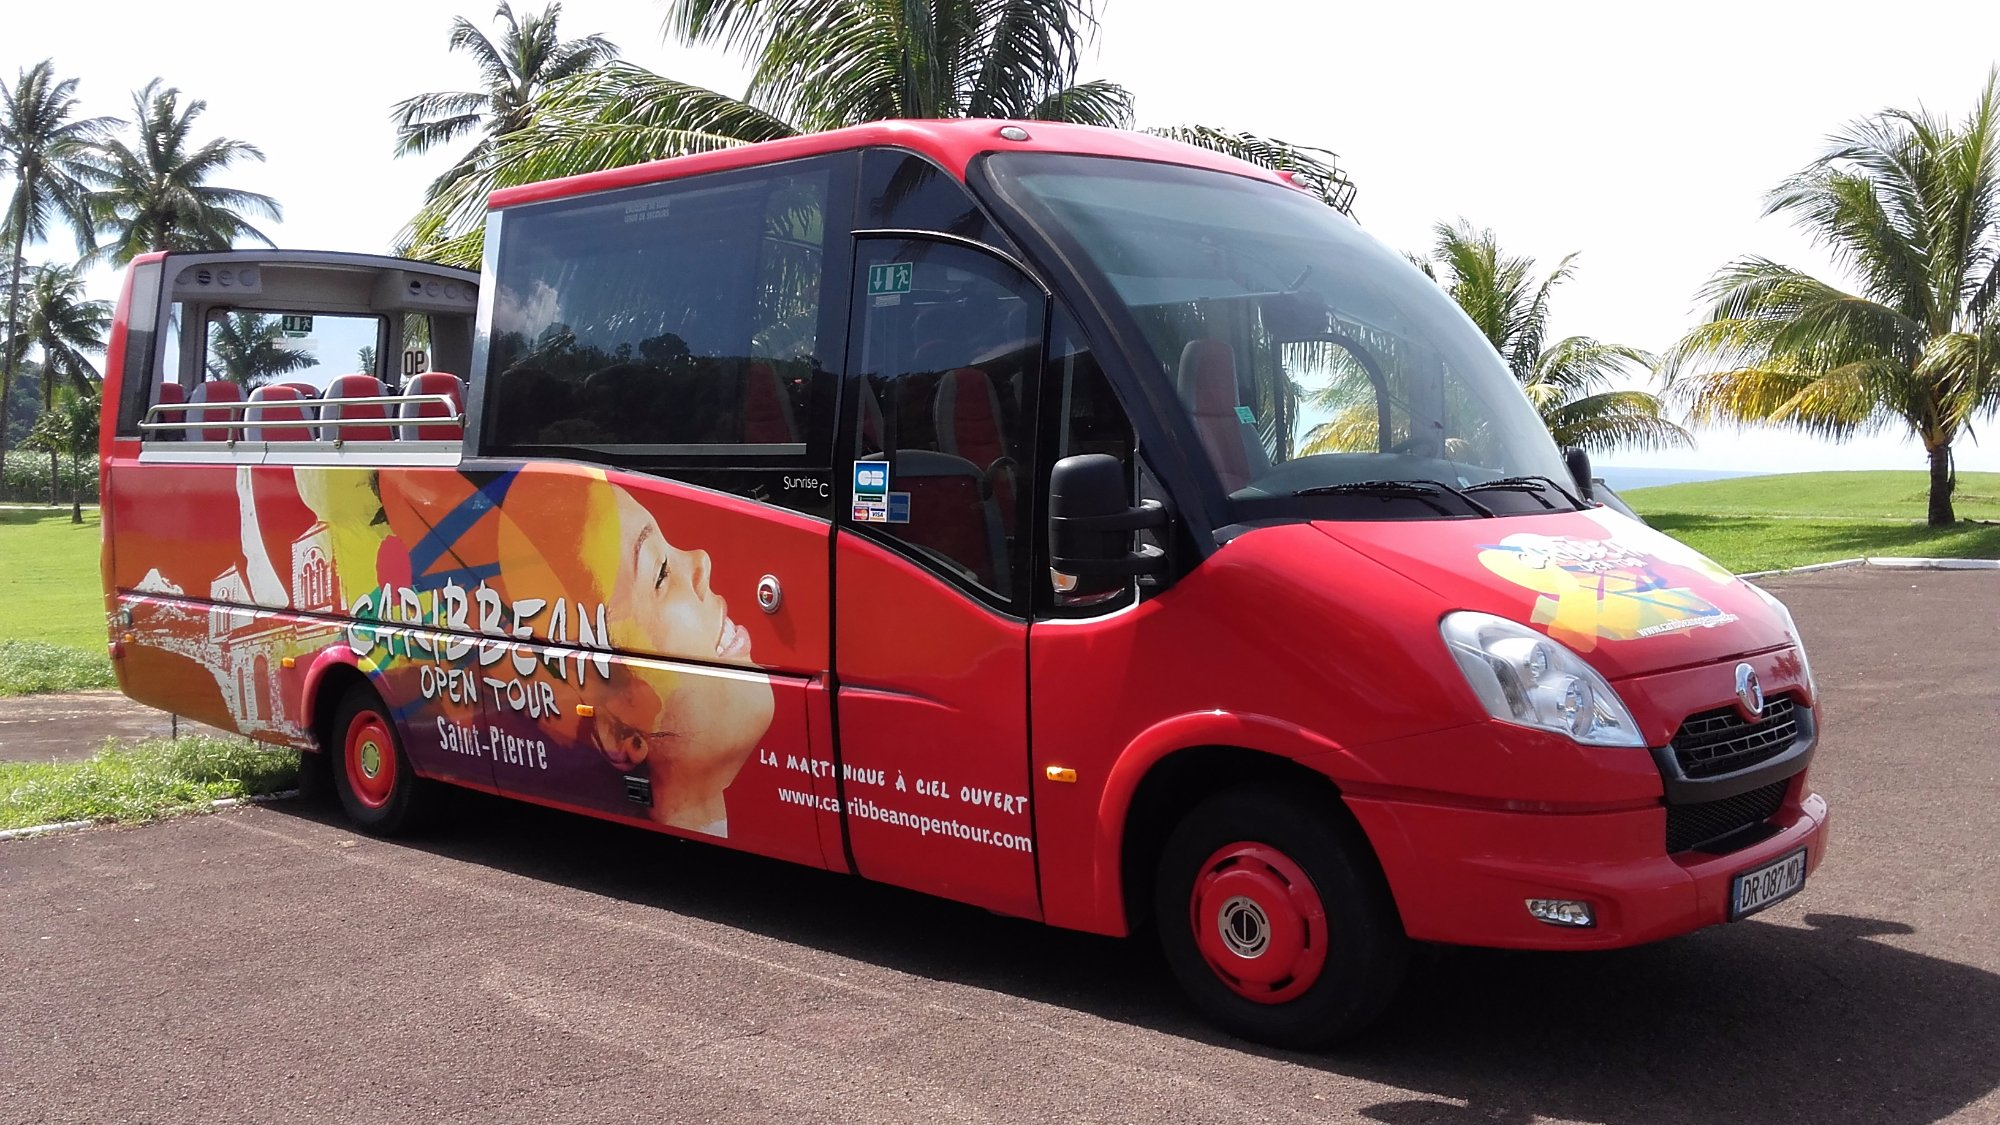 Caribbean Open Tour Open Top Coach Sightseeing Discover Martinique